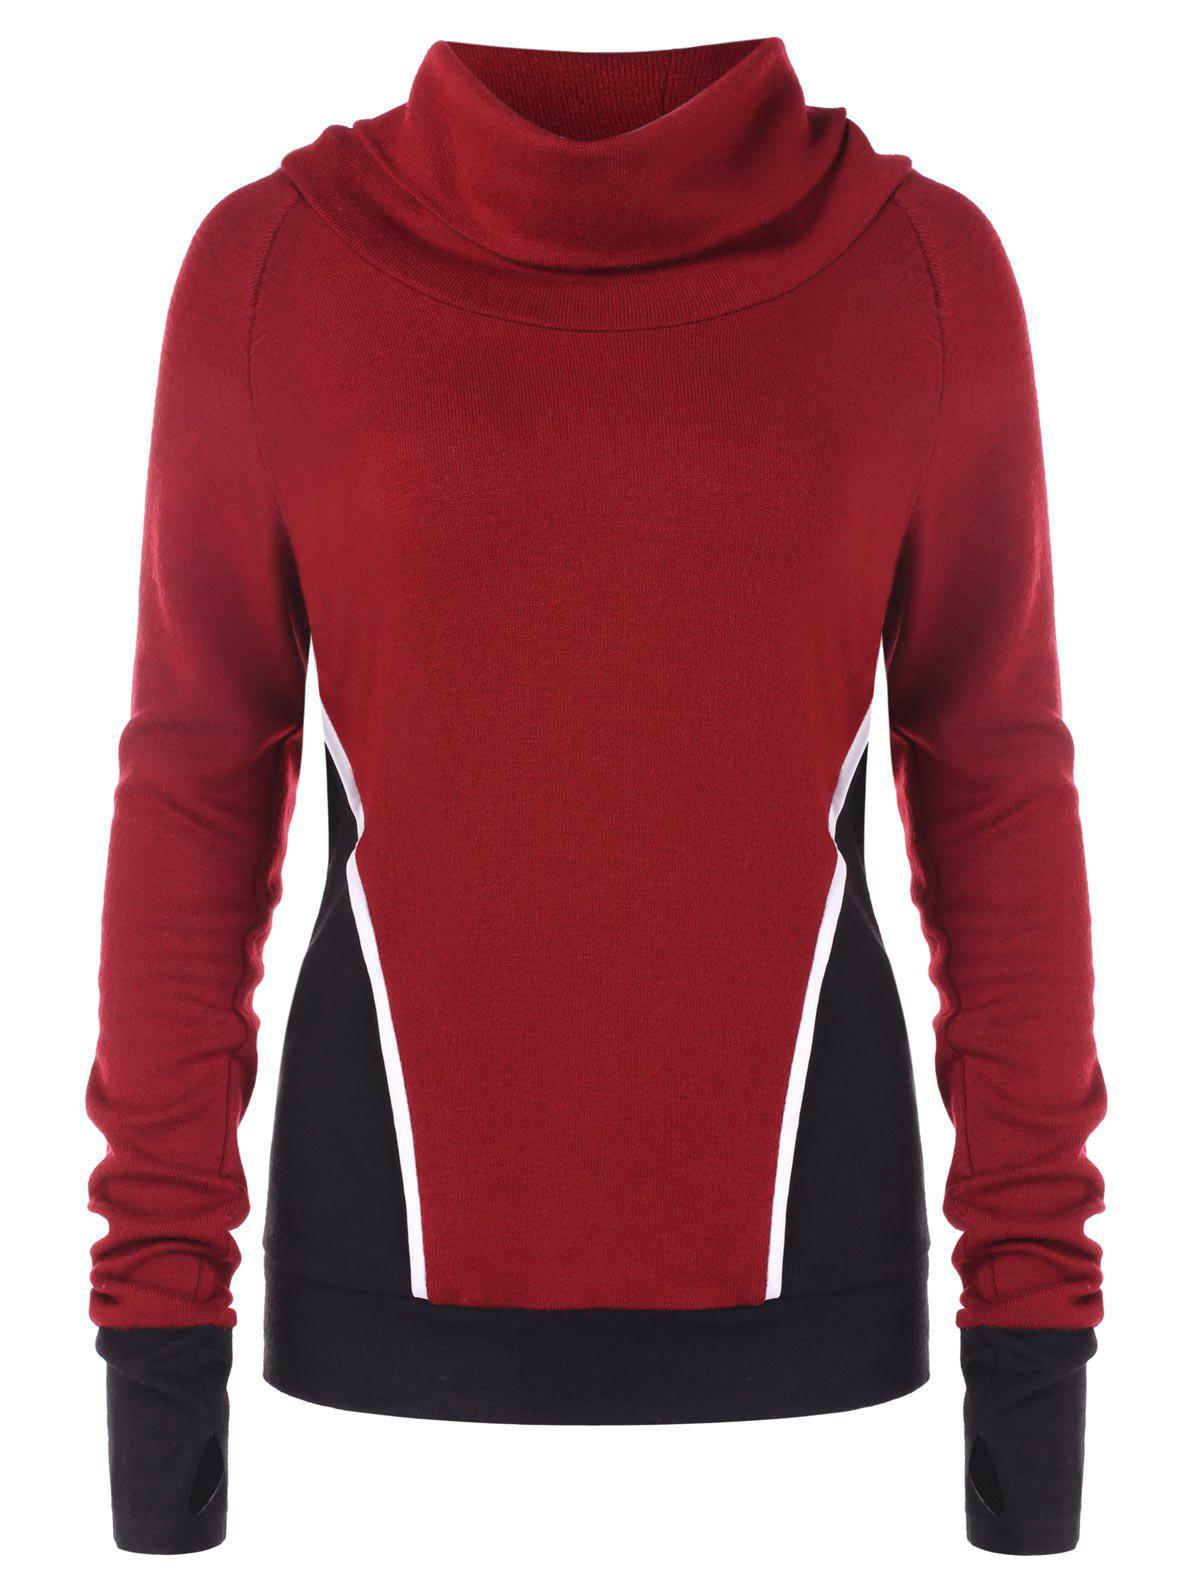 Sweat-shirt en Blocs de Couleurs à Col Roulé Rouge Vineux L